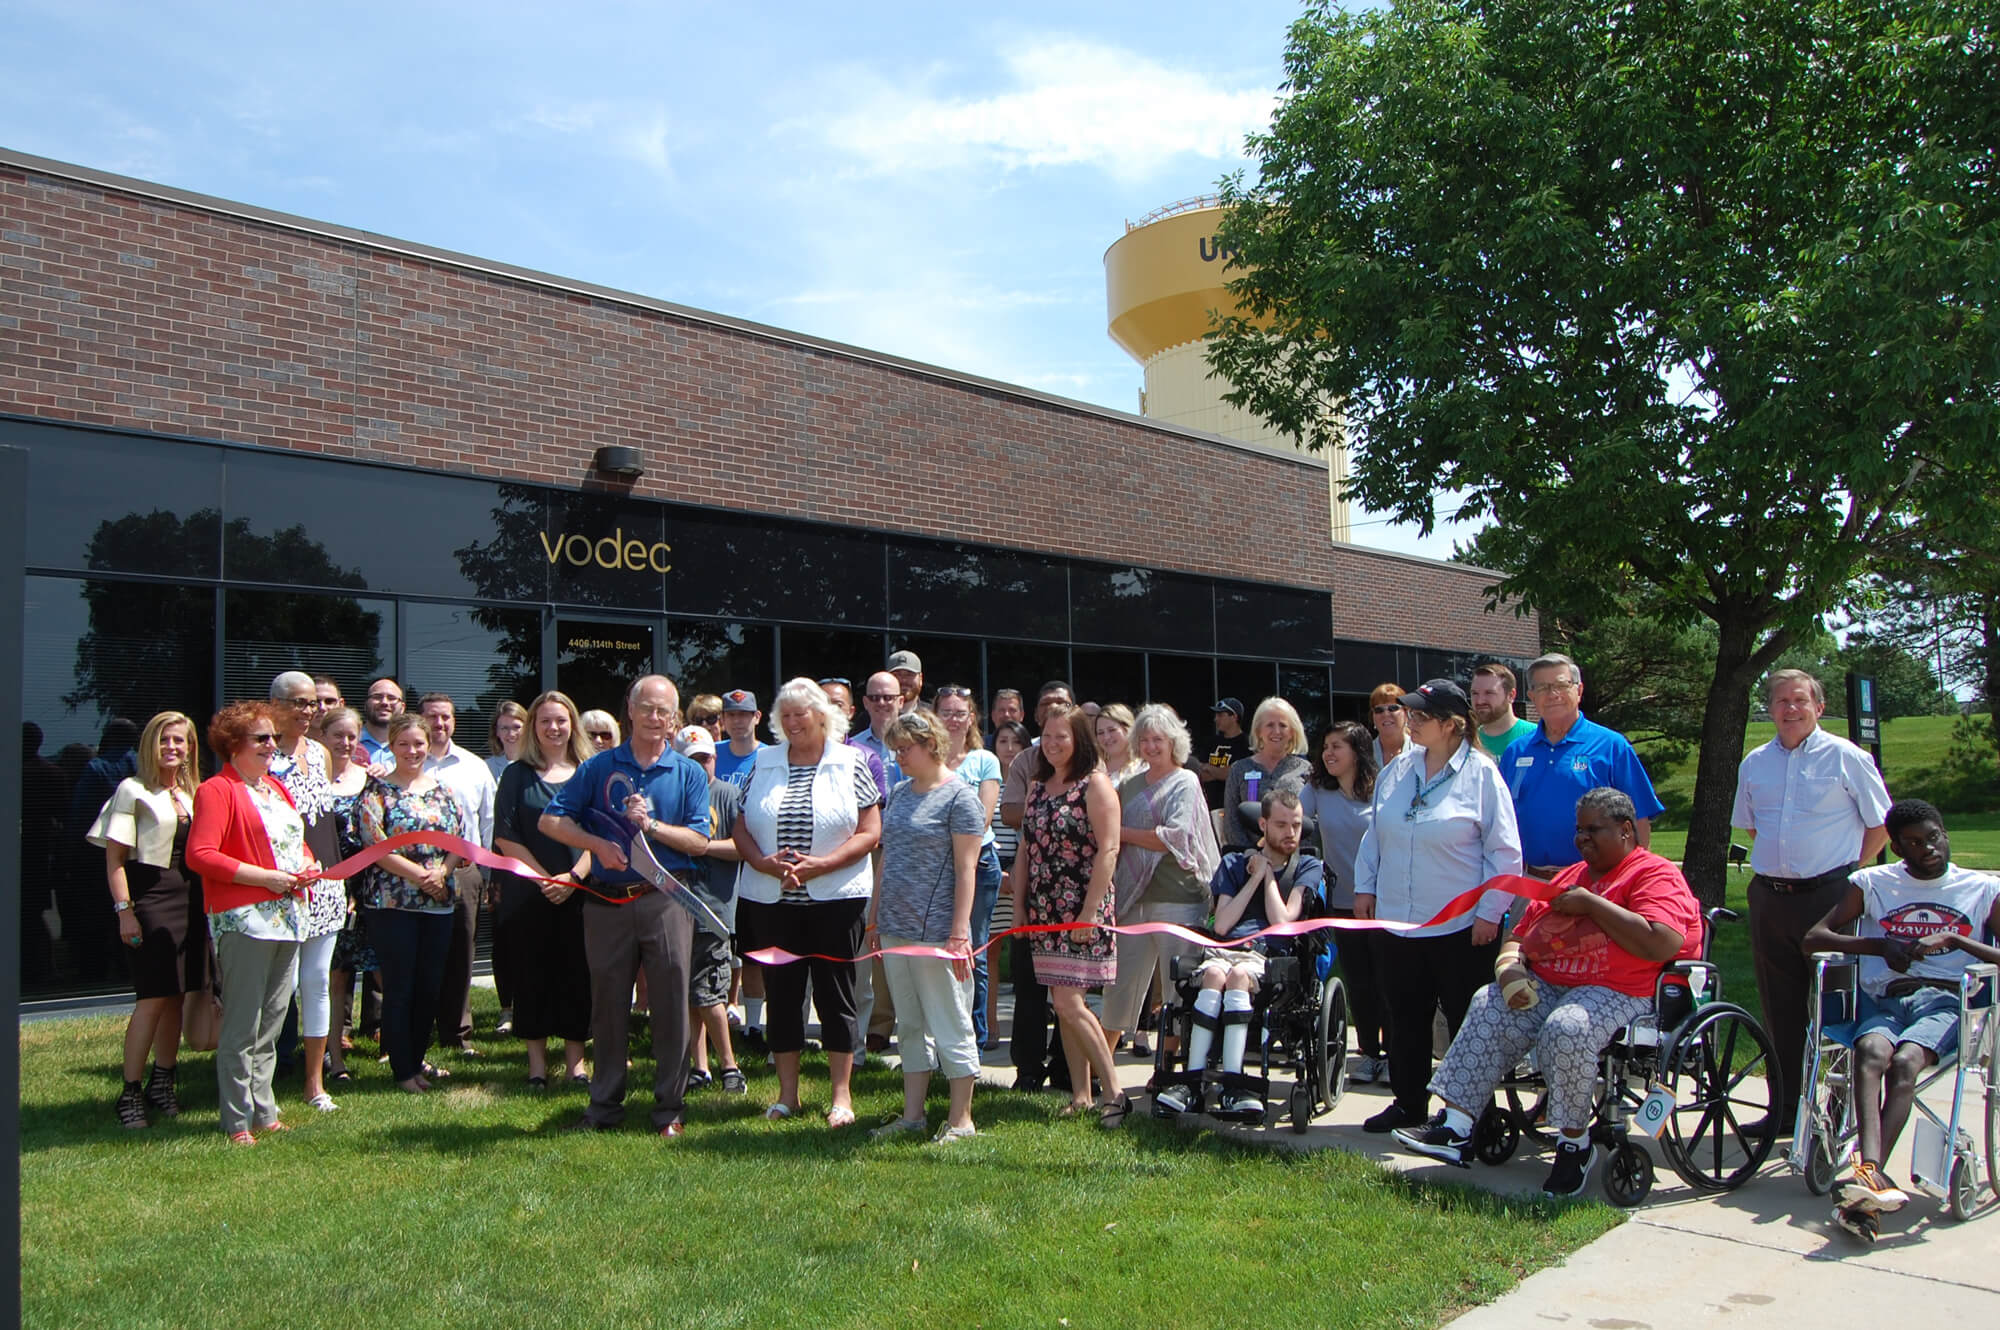 A crowd attends a ribbon cutting ceremony.